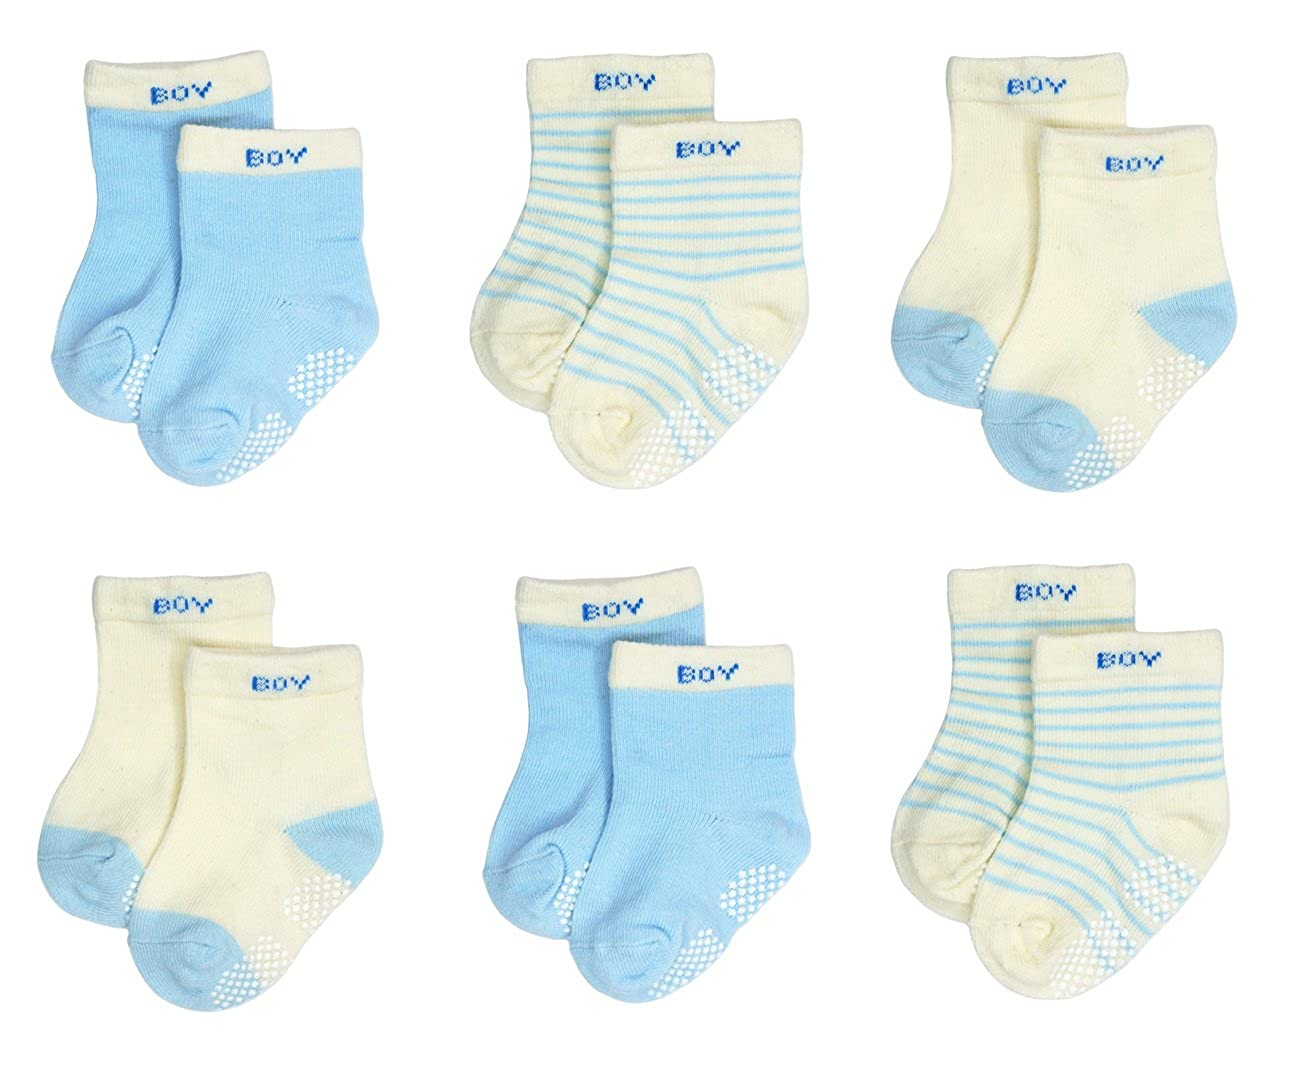 Boy Girl Liwely 6 Pairs Baby Socks Anti Slip Skid Cotton Socks with Grips for 3-12M